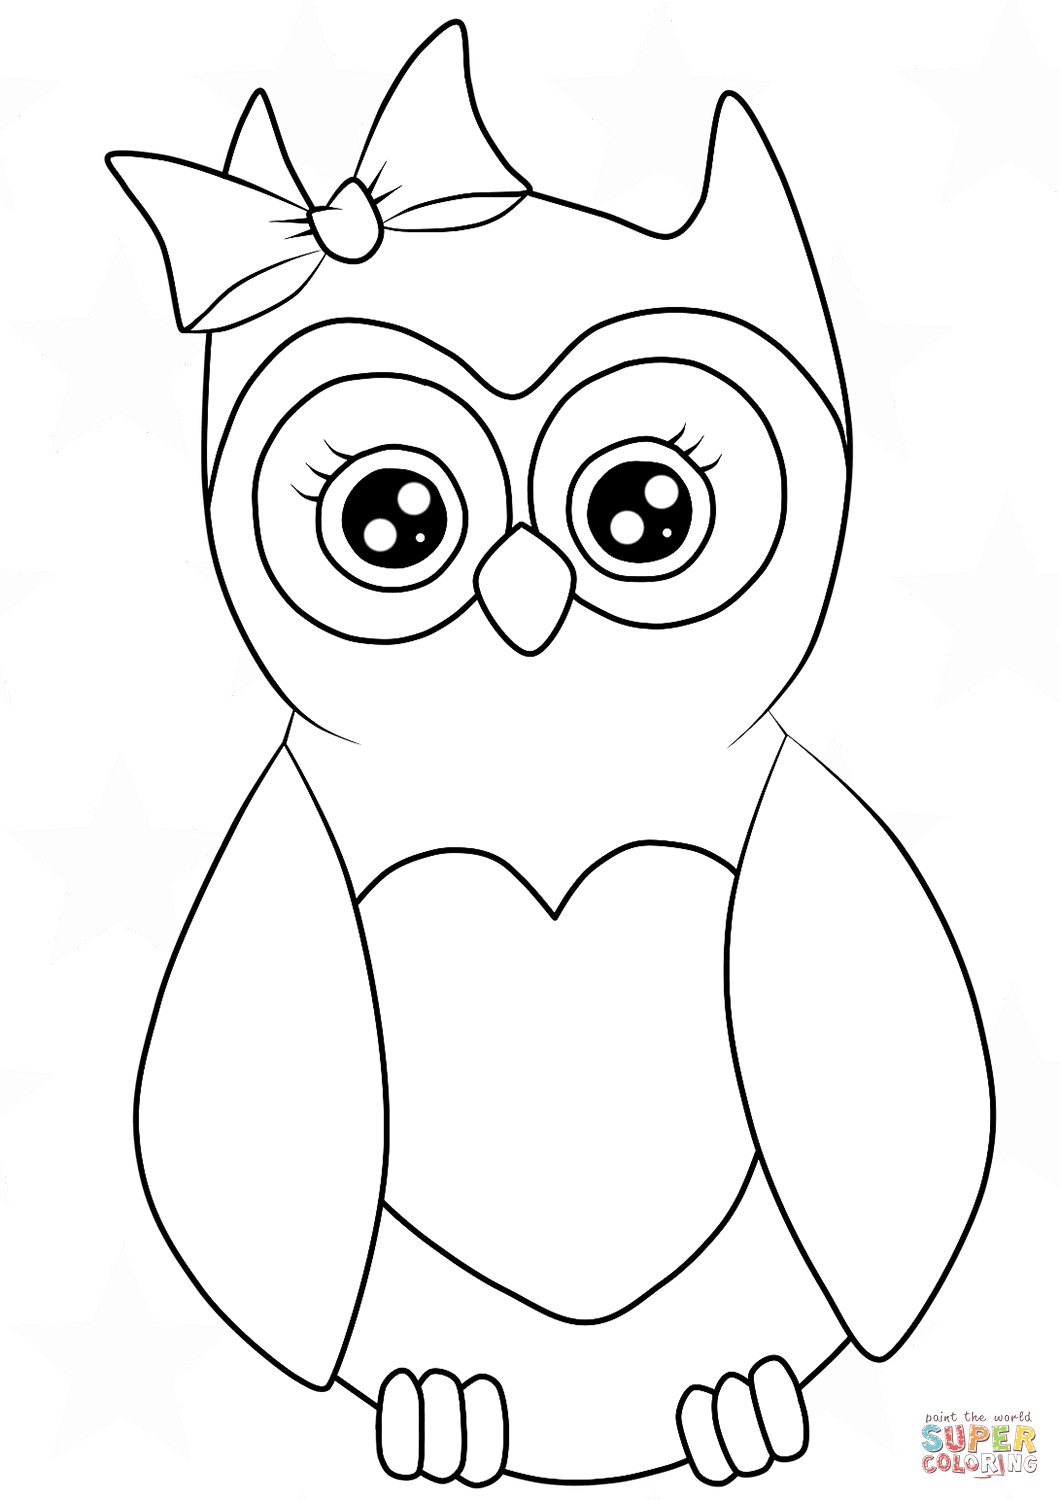 printable owl cutest cartoon owl coloring page free printable coloring printable owl